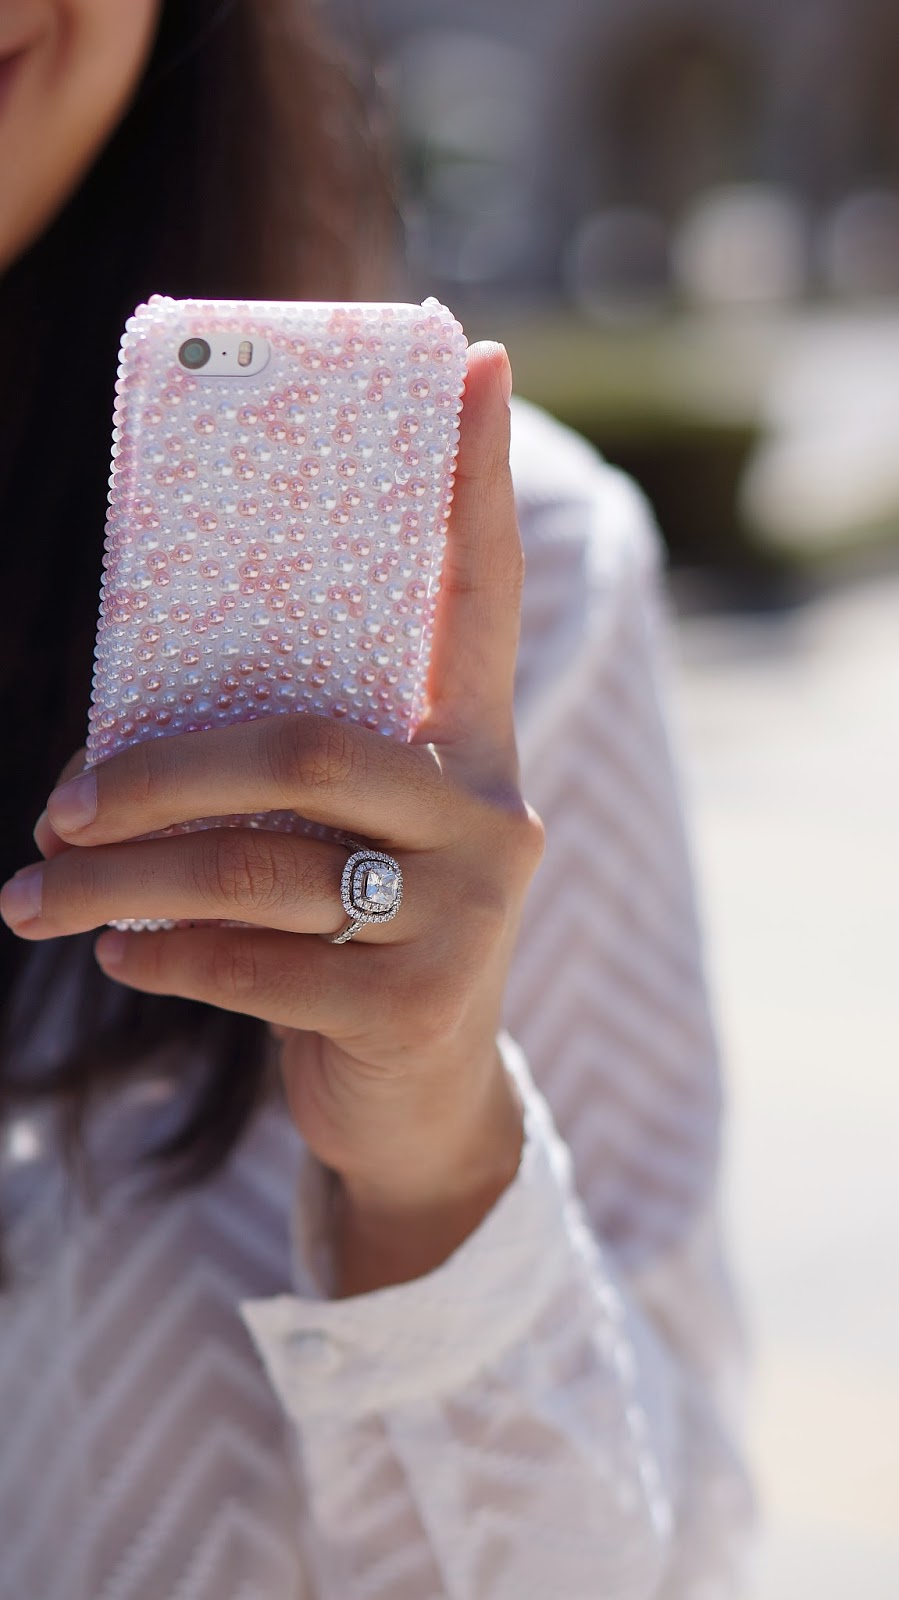 iPhone 5s cover. Robbins Brothers Engagement ring. Stylish Phone Case